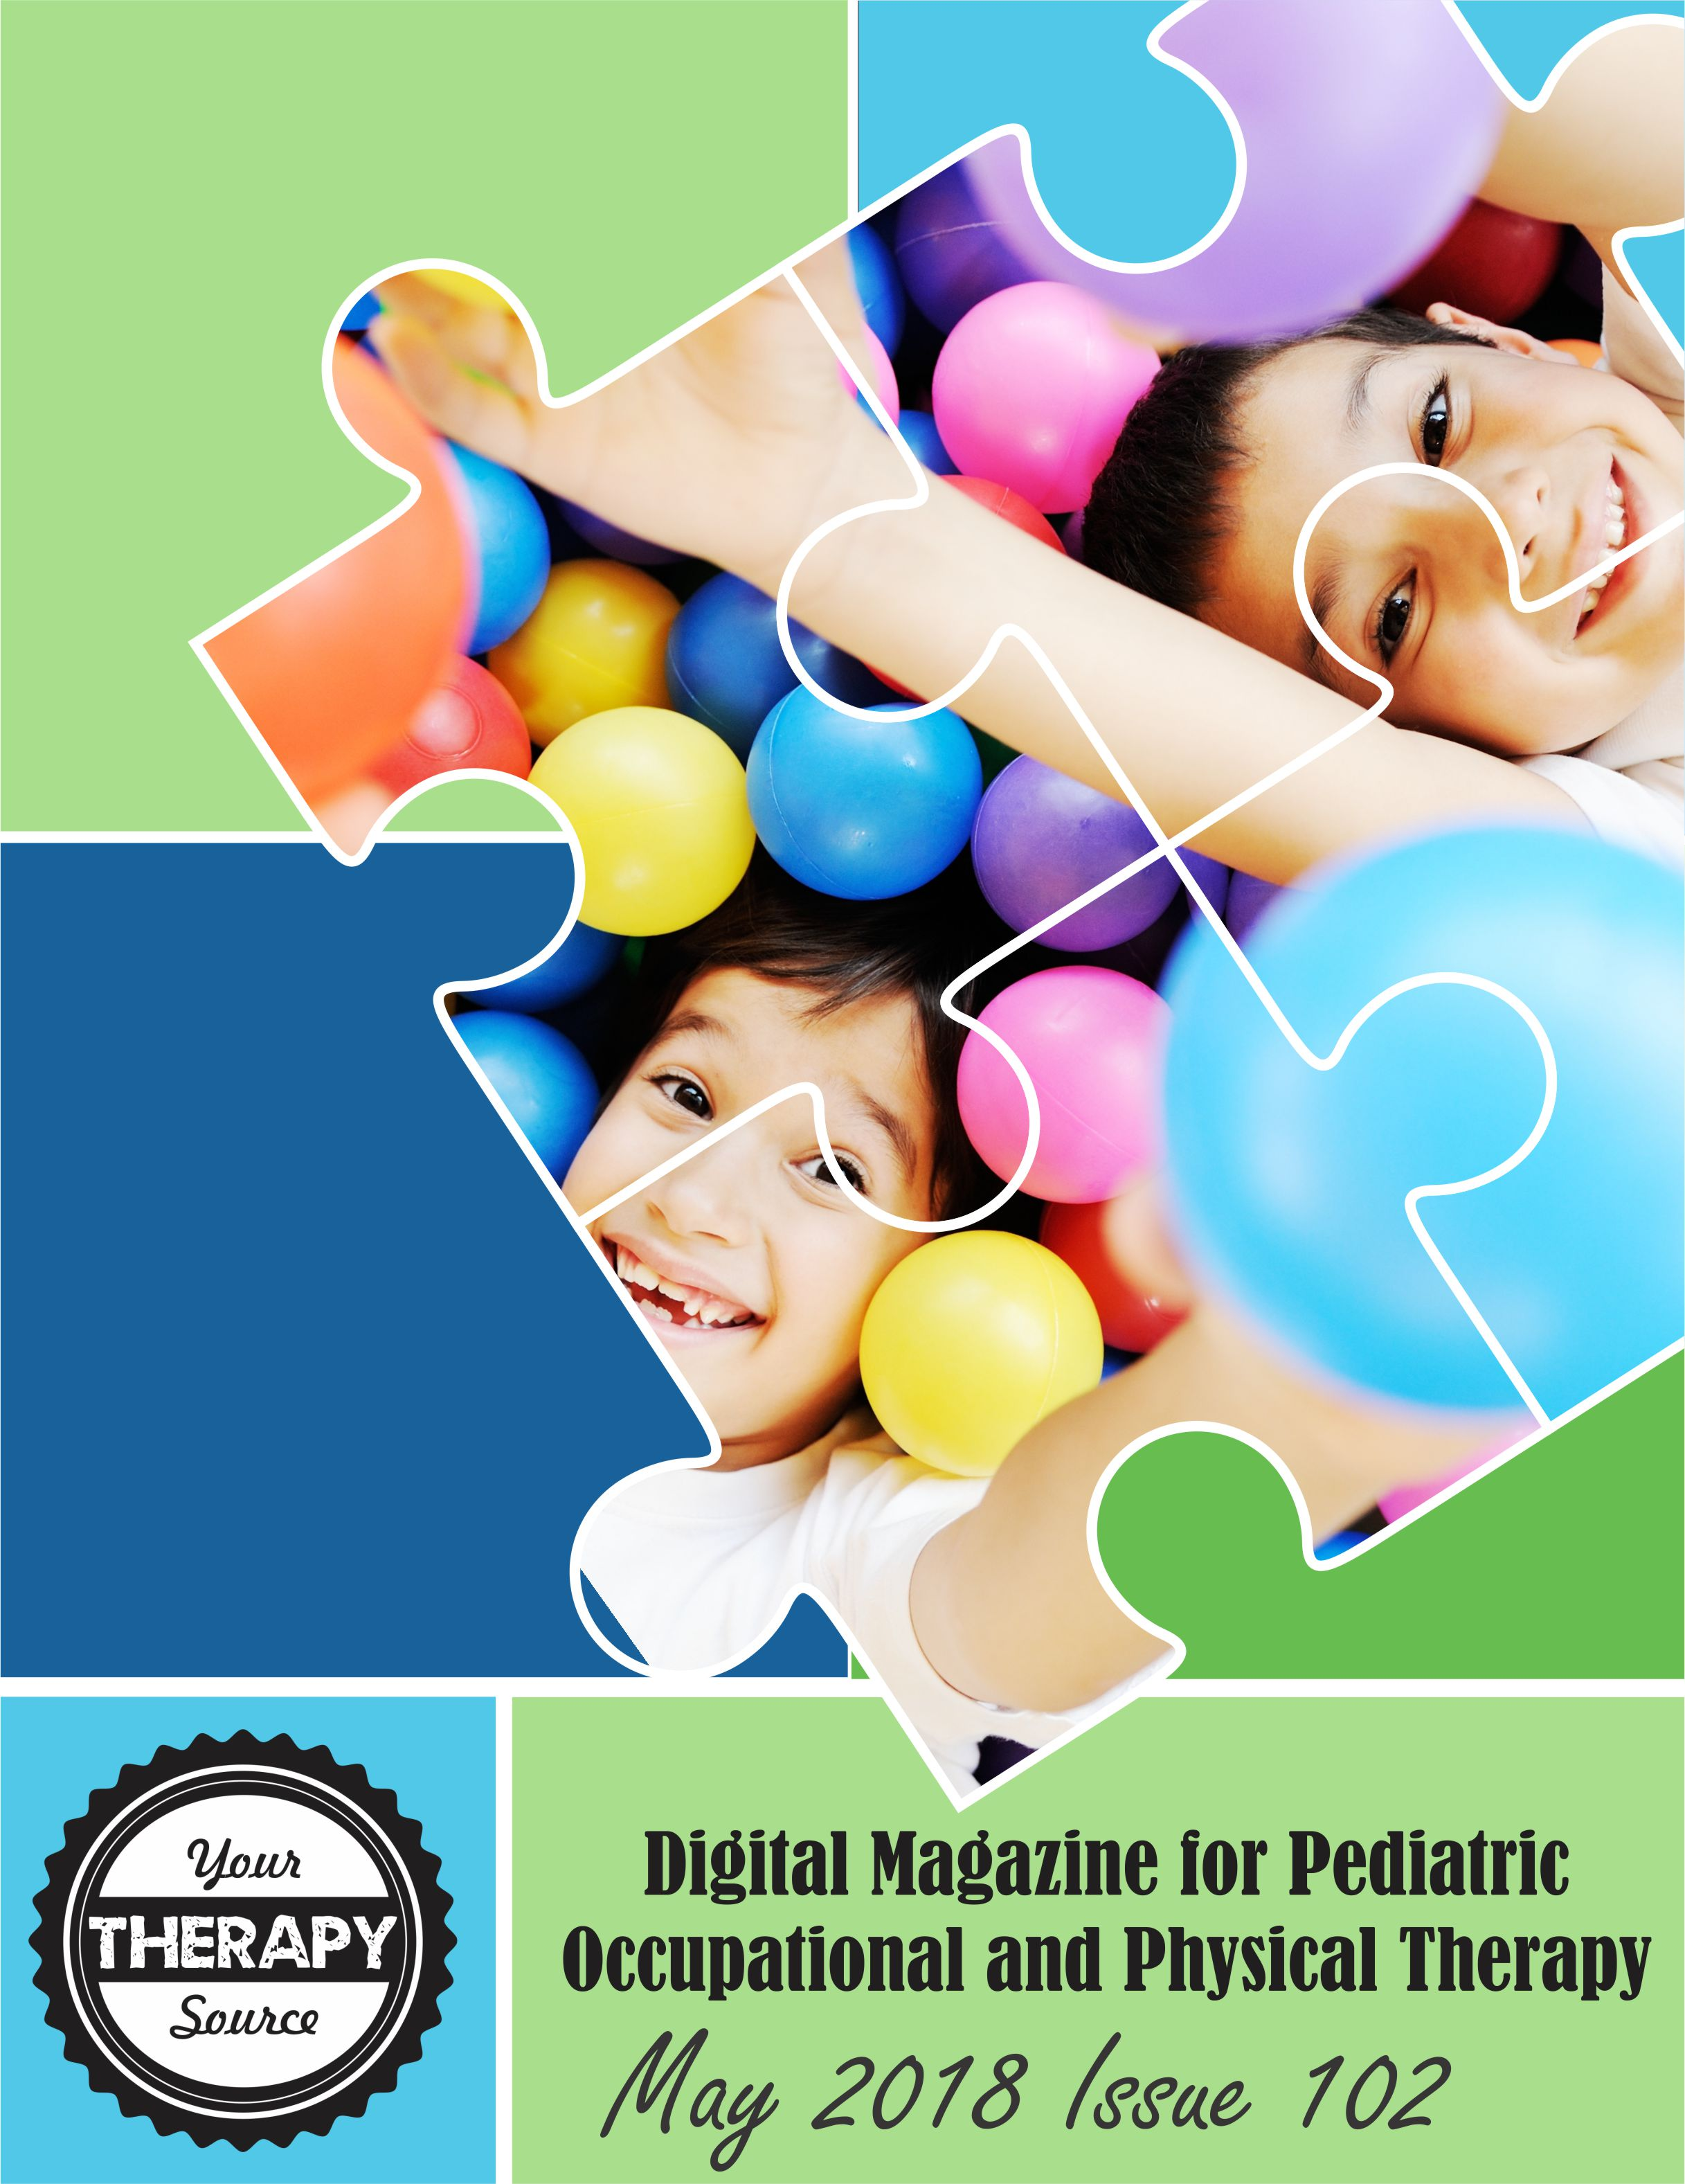 May 2018 Issue of the Digital Magazine for Pediatric Occupational Therapy and Pediatric Physical Therapy